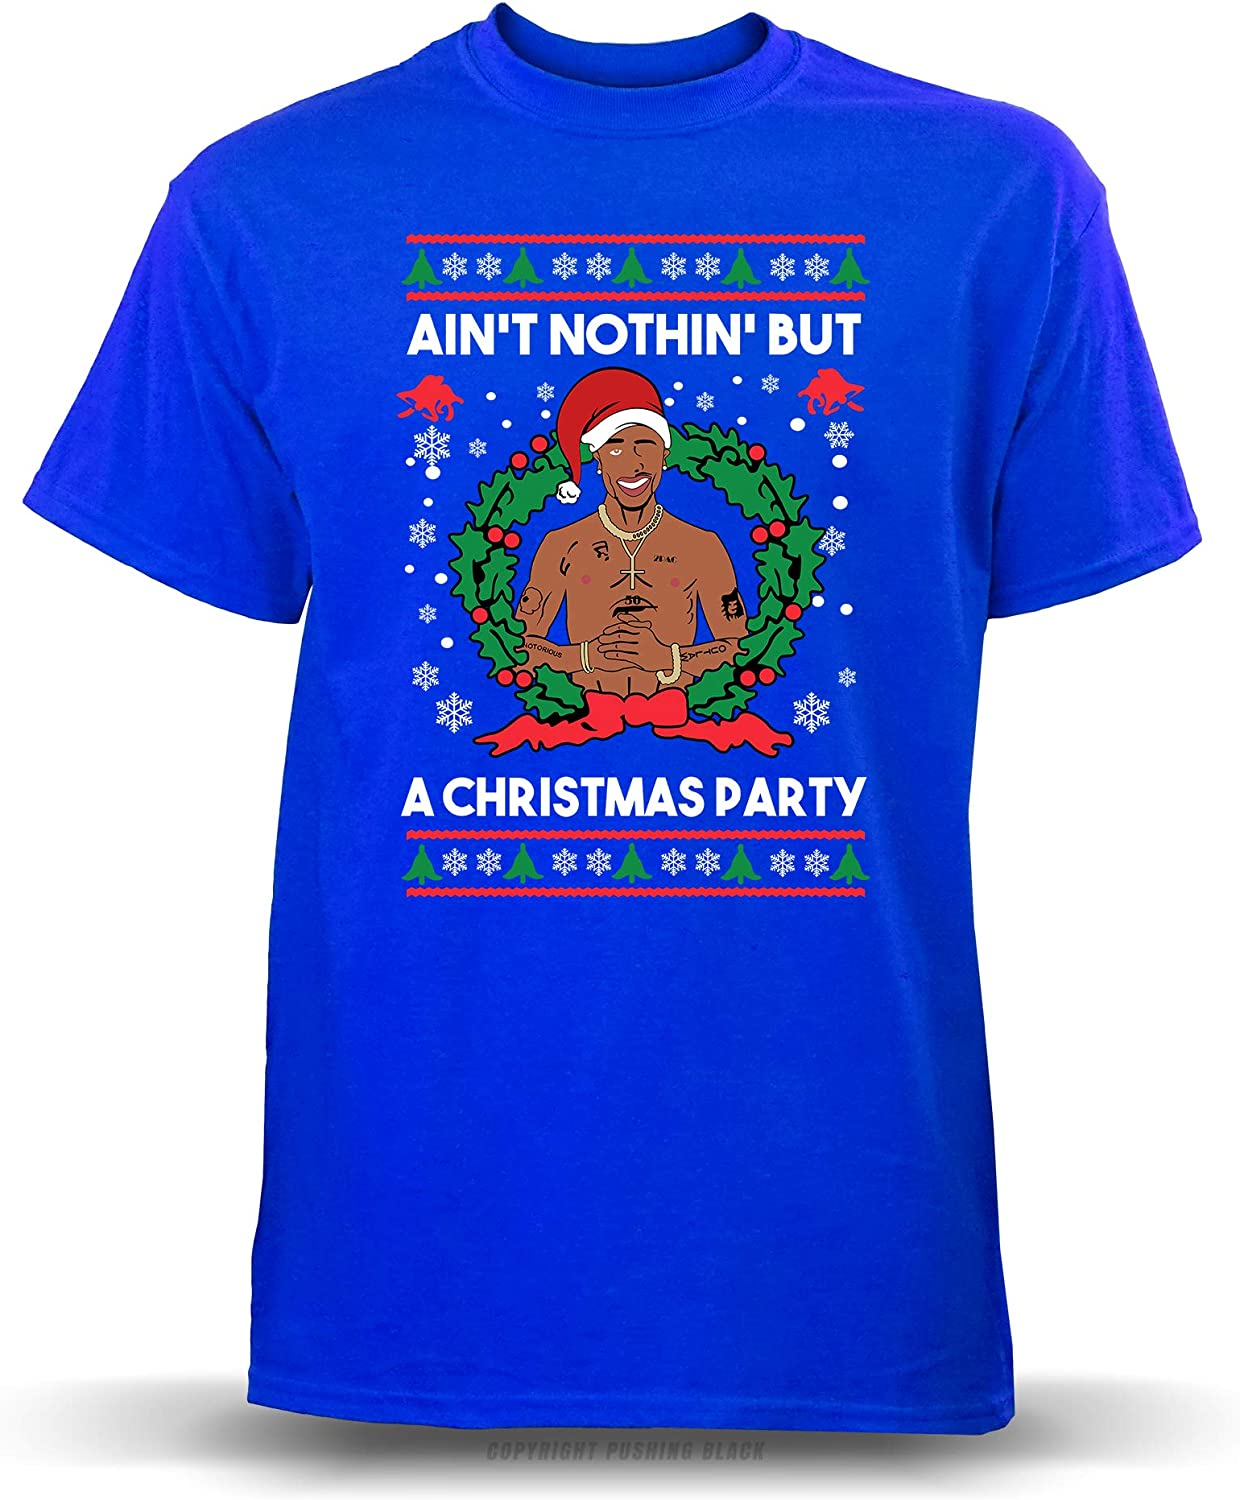 PUSHING BLACK Aint Nothing But a Christmas Party Youth T-Shirt , Small Blue Gildan